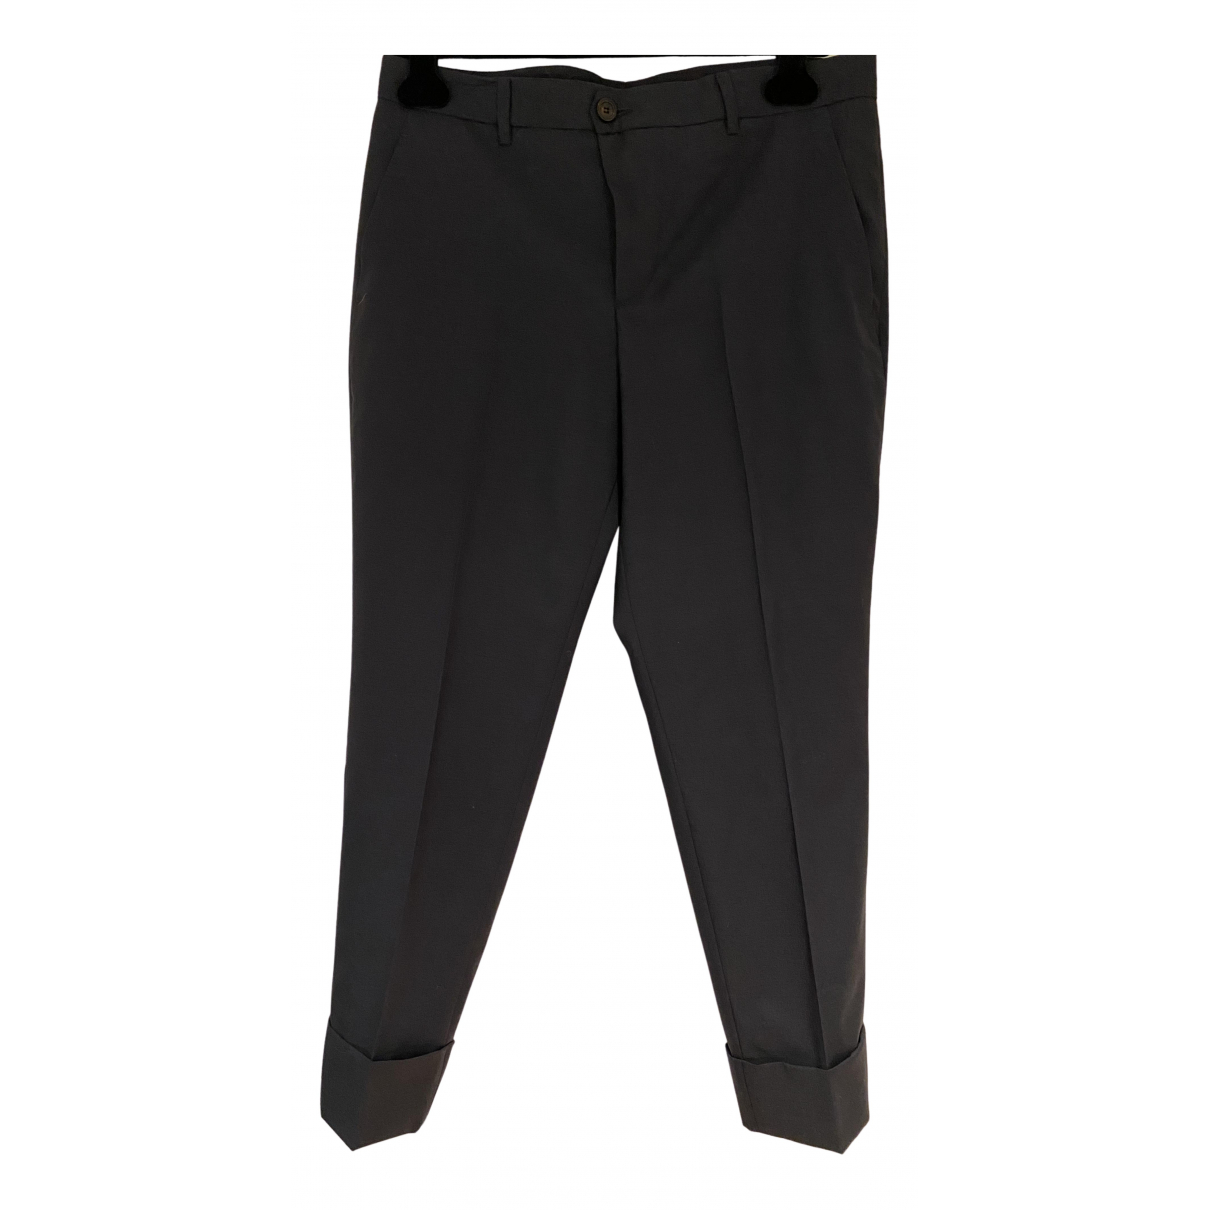 Miu Miu N Blue Wool Trousers for Women 42 IT